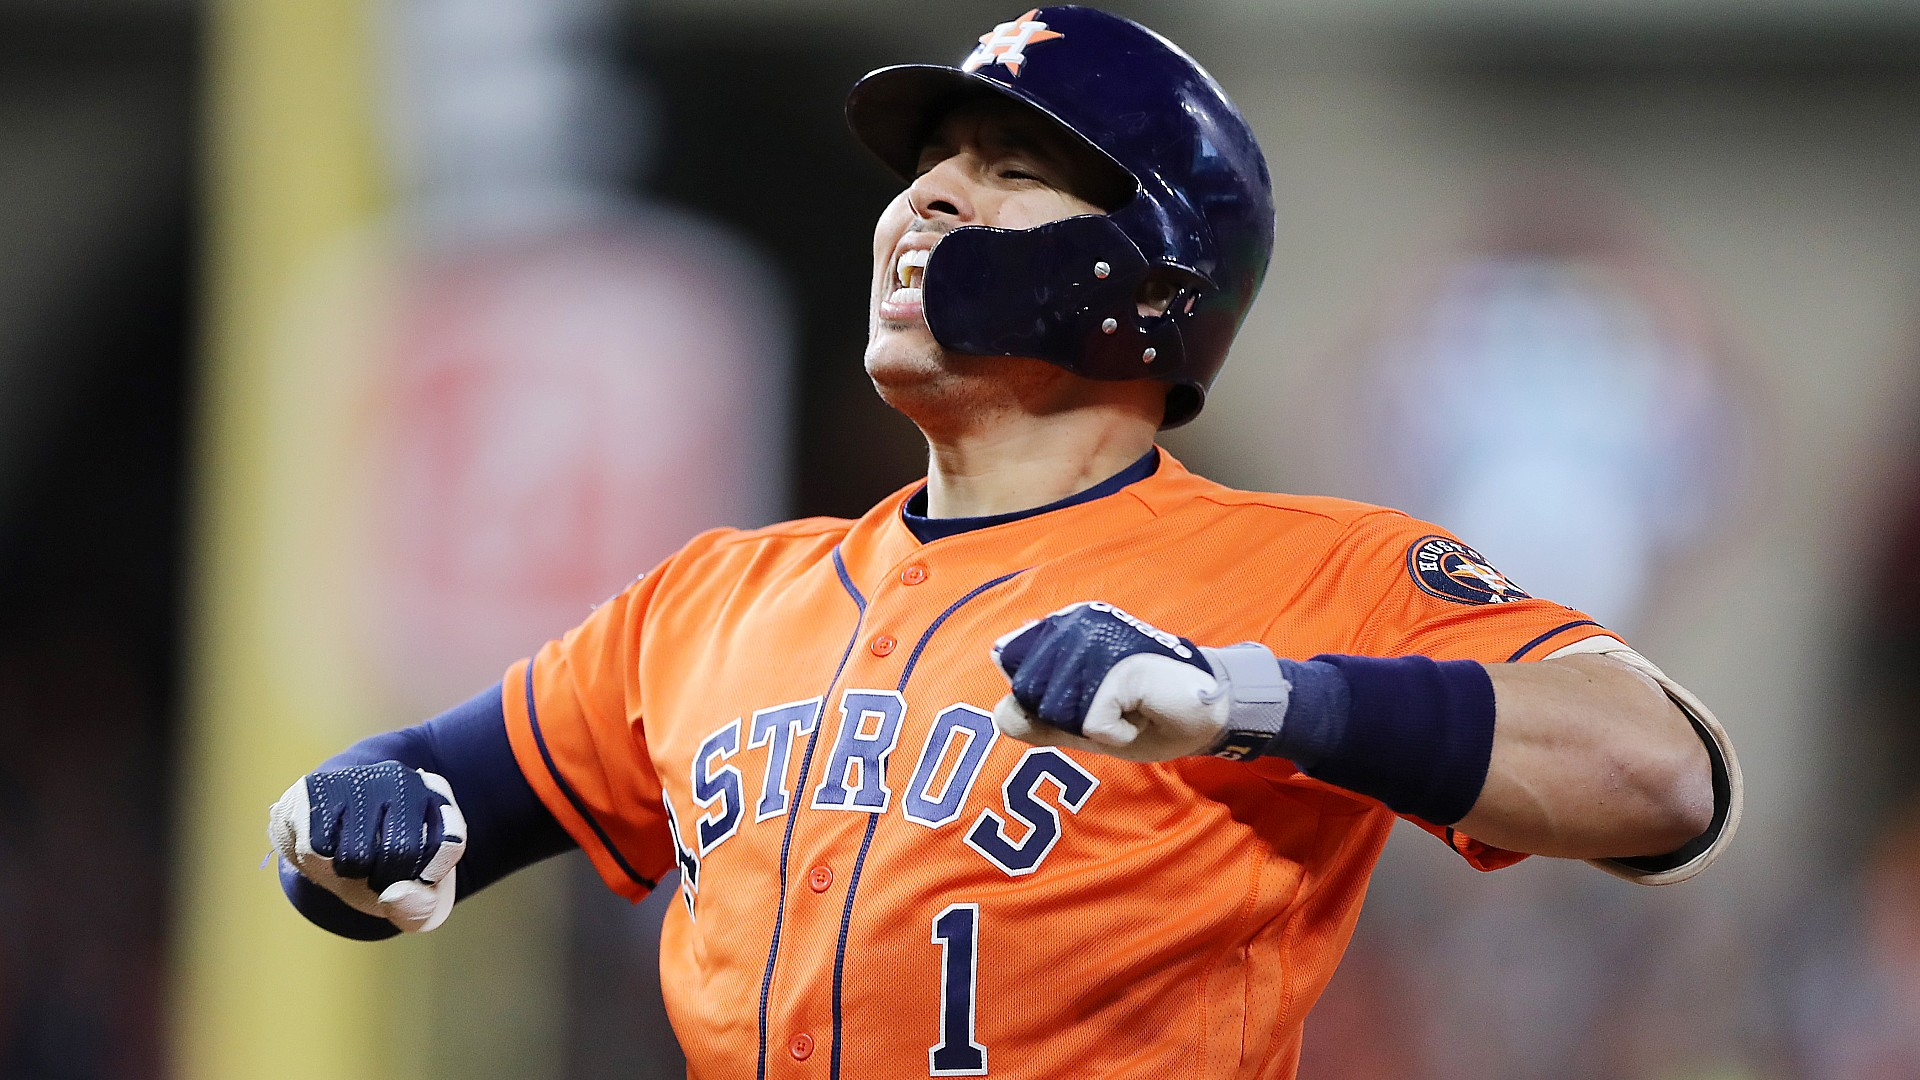 Astros' Carlos Correa fights fire with fire on sign-stealing, fails to lower temperature